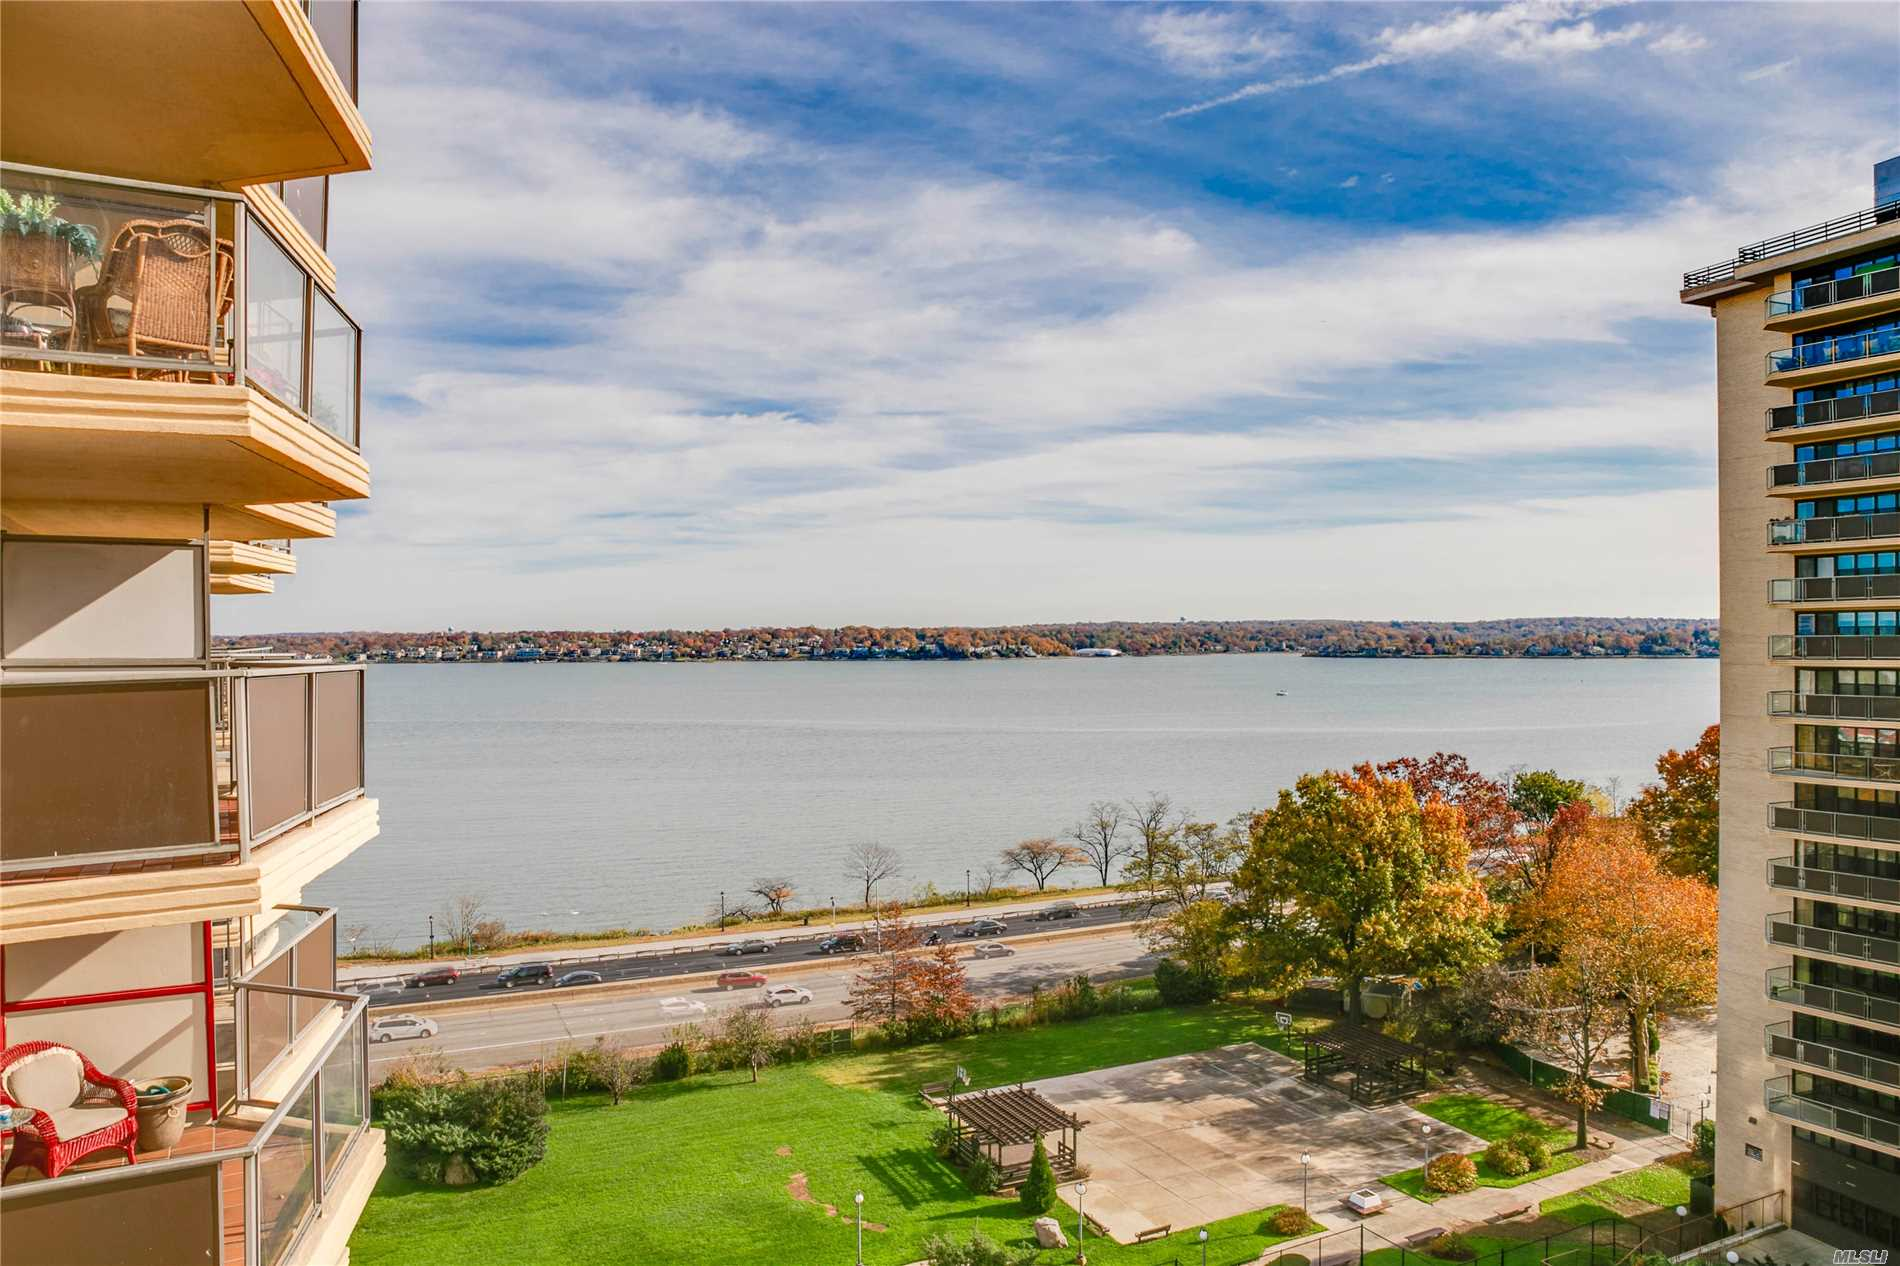 Bayside Water View 2 Bedroom 2 Bath Located In The Desirable Dog Friendly Americana At The Towers At Water's Edge. Enjoy The Morning Sunrise From Your Private Balcony With Southeast Views Of Little Neck Bay. Opportunity To Customize To Your Design Style. Base Maintenance $1, 299.53 + Electricity $120.99 + Amerserv $80=$ 1, 500.52. Enjoy The Resort Style Living At The Americana With 24 Hour Doorman, Parking, On-Site Salon, Dry Cleaners, Store, Health Club, Outdoor Heated Pool, & Tennis!